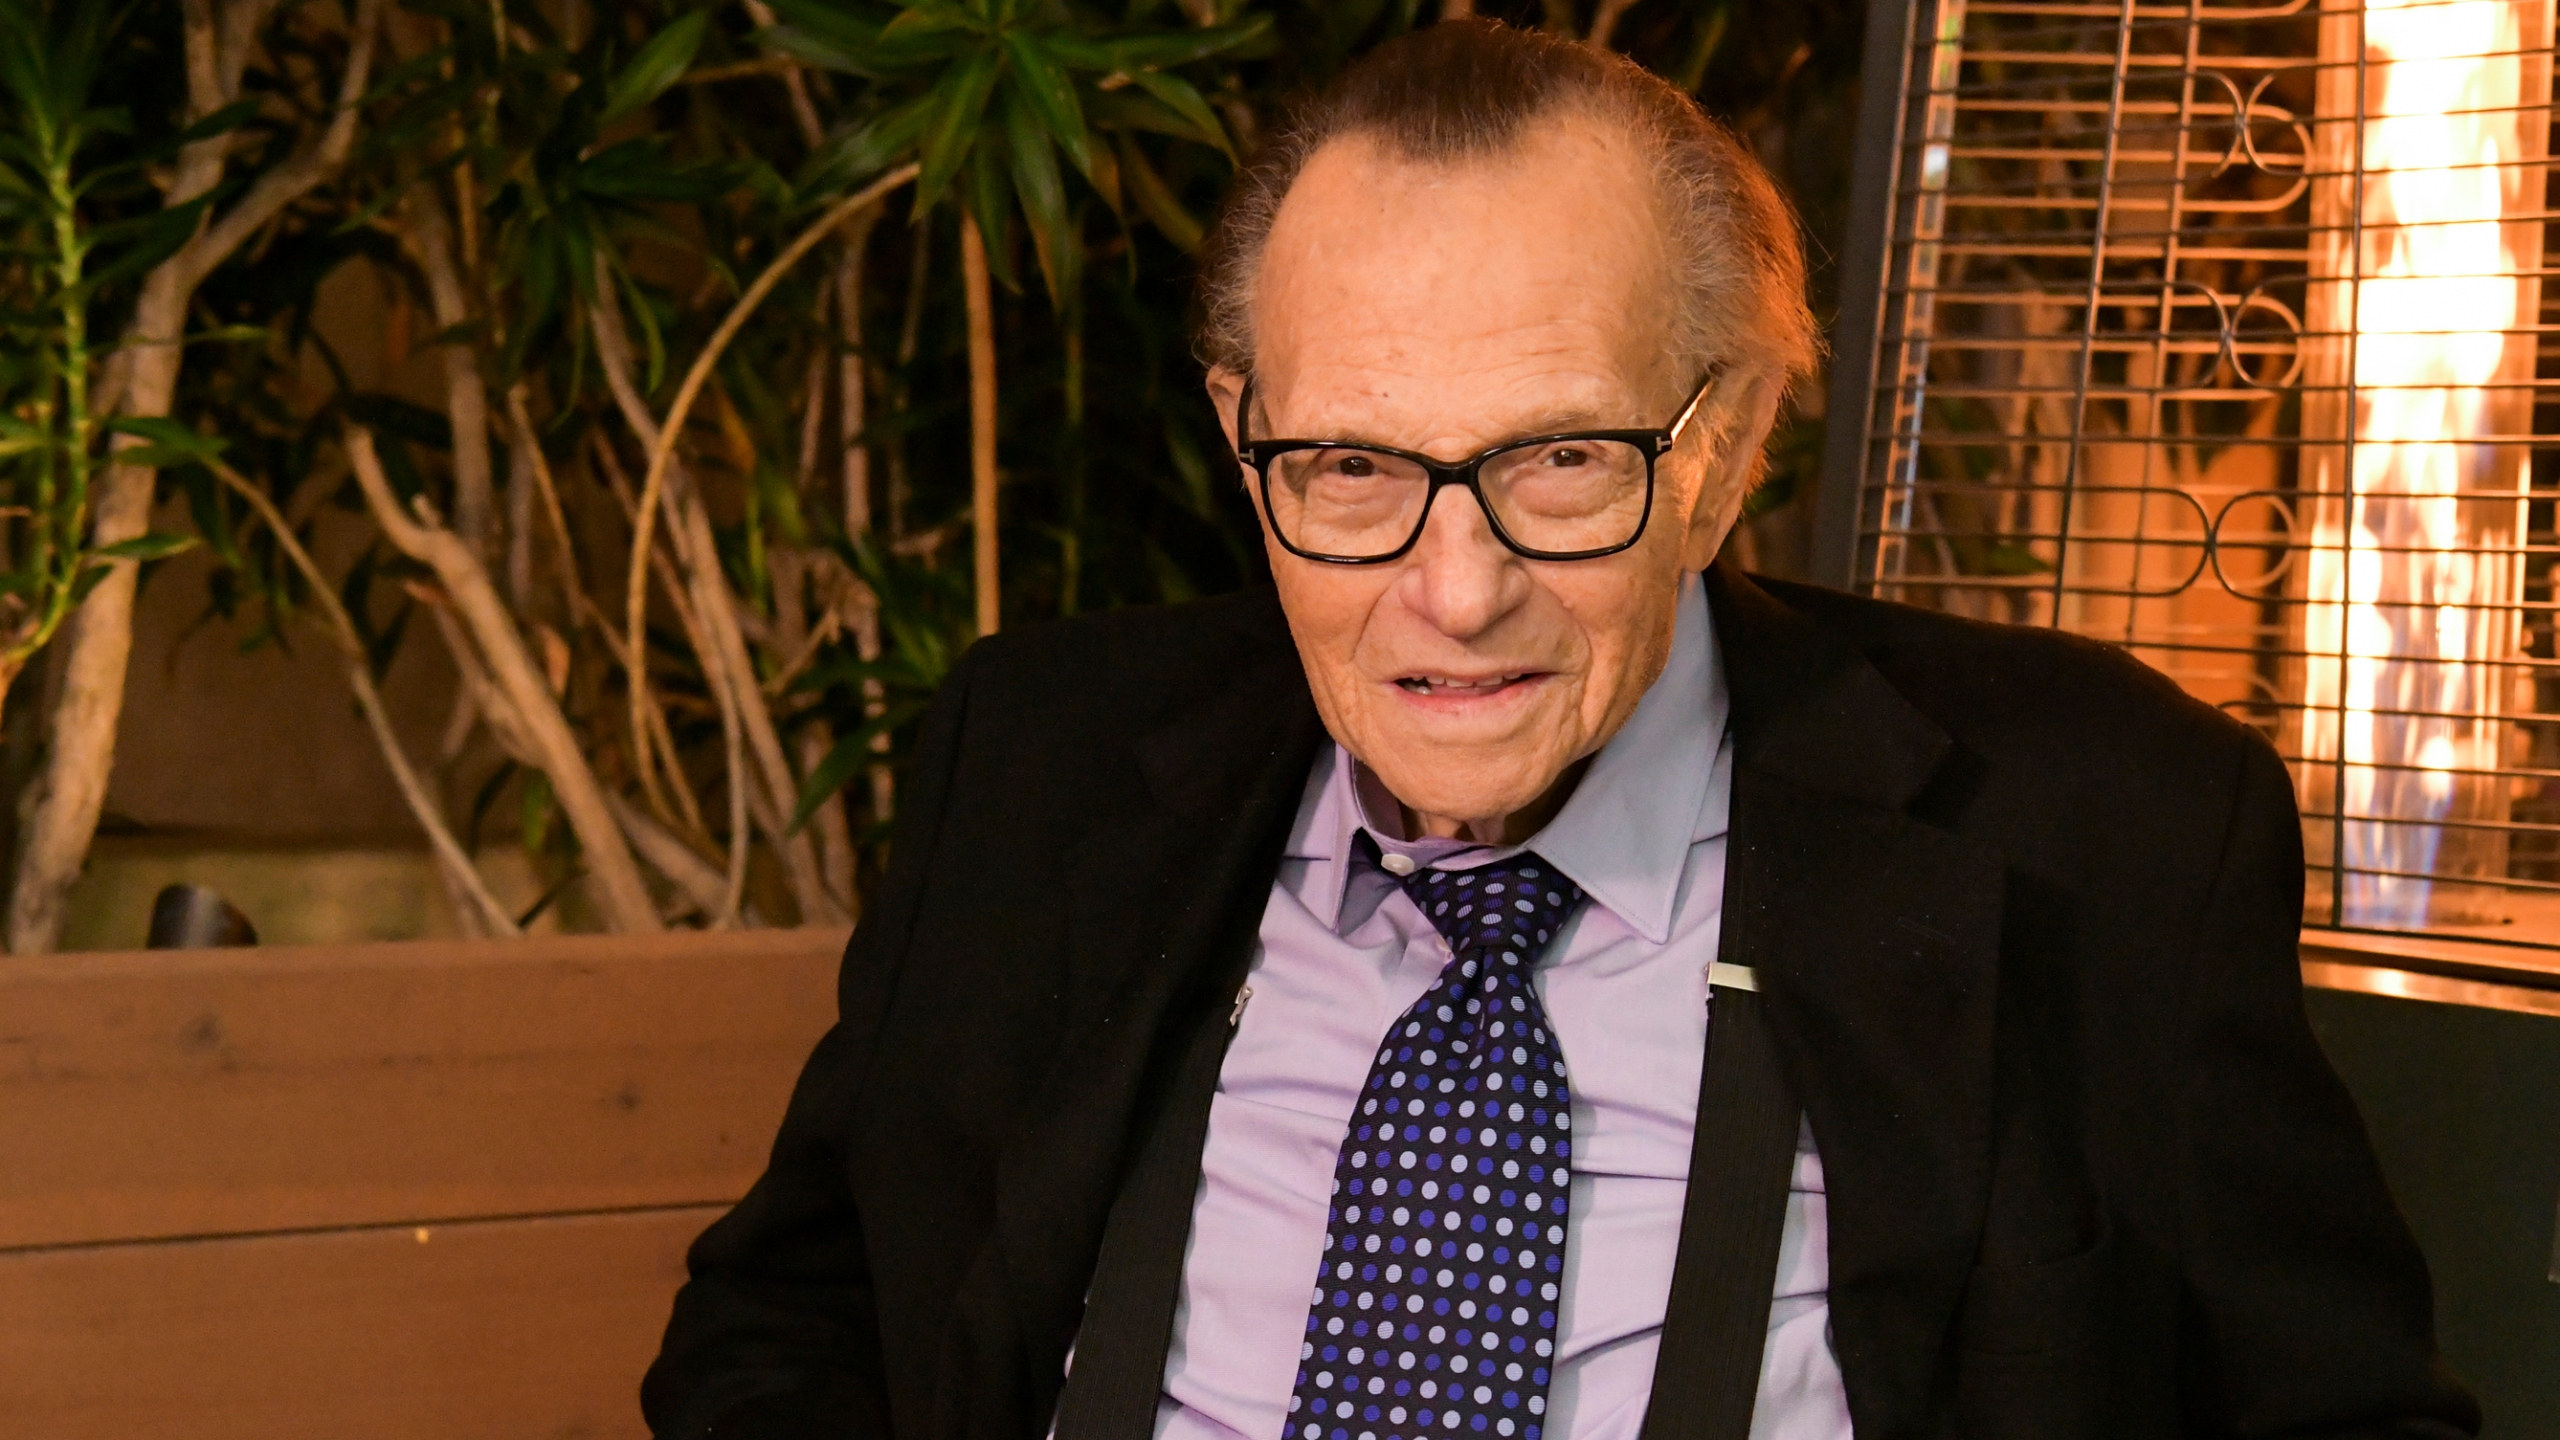 Larry King poses for portrait at Crescent Hotel on Nov. 25, 2019, in Beverly Hills. (Rodin Eckenroth/Getty Images via CNN)